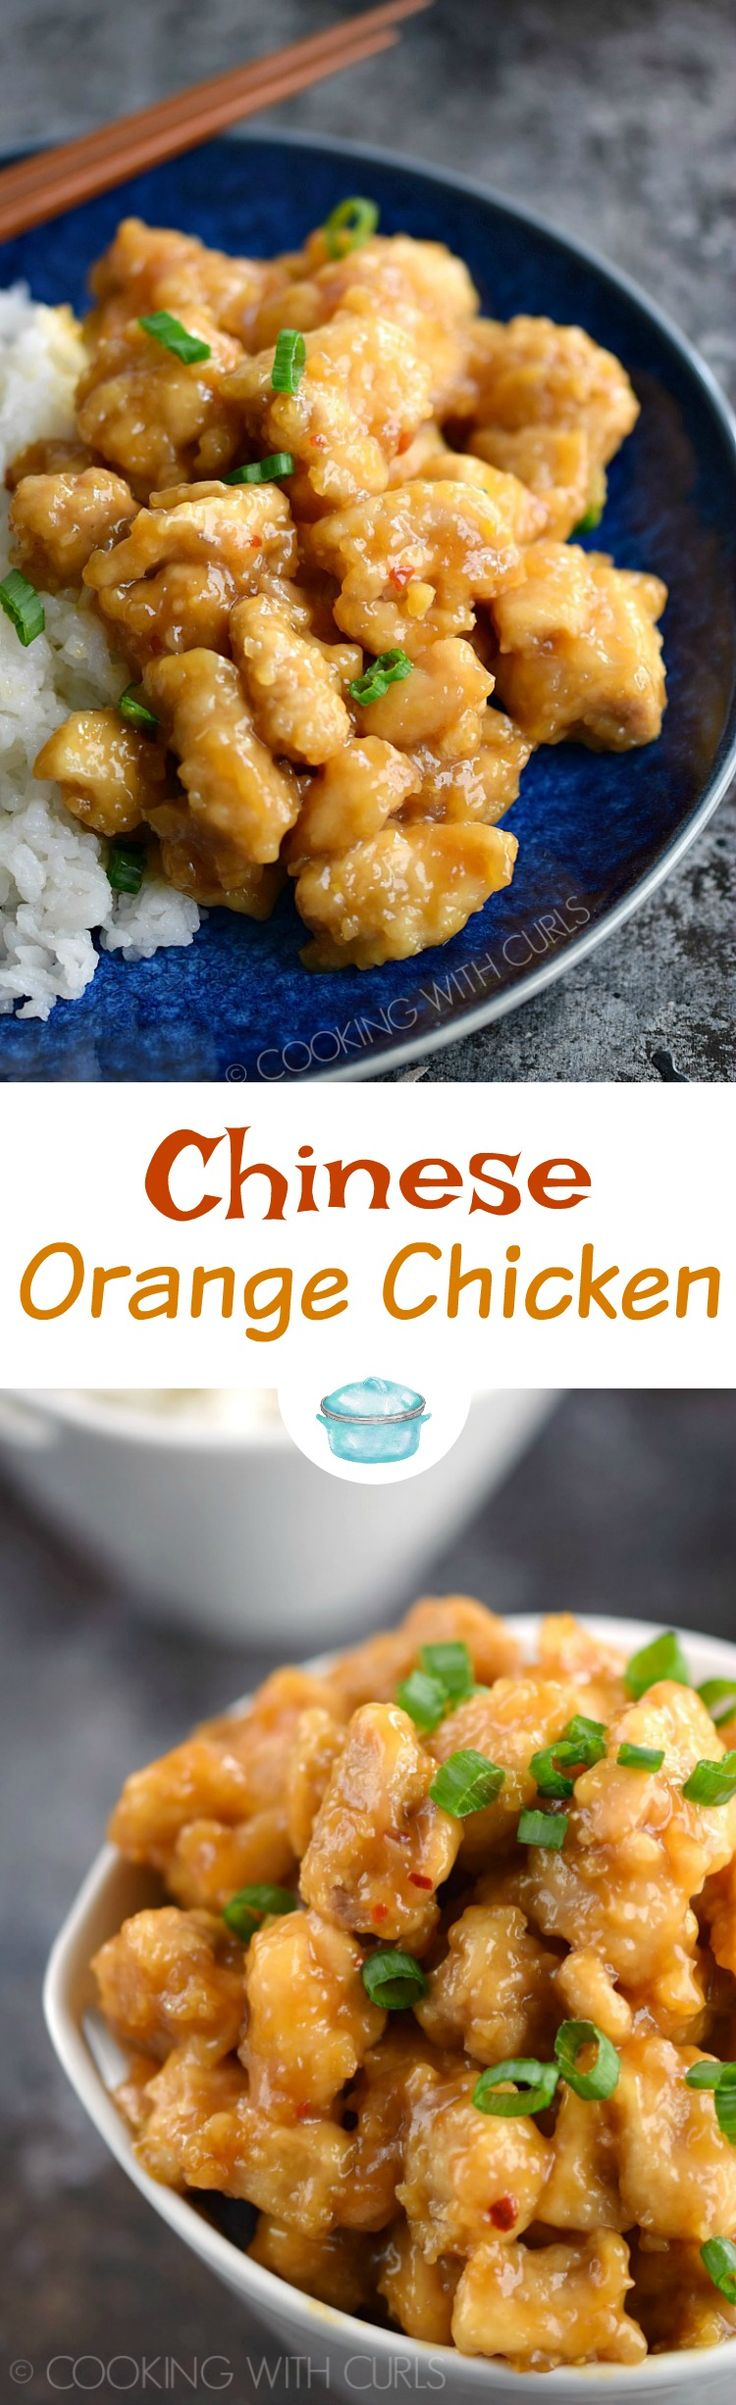 Impress your family with your mad skills and serve them Chinese Orange Chicken for dinner tonight! It's tastes better than take-out and it's healthier too!! © COOKING WITH CURLS